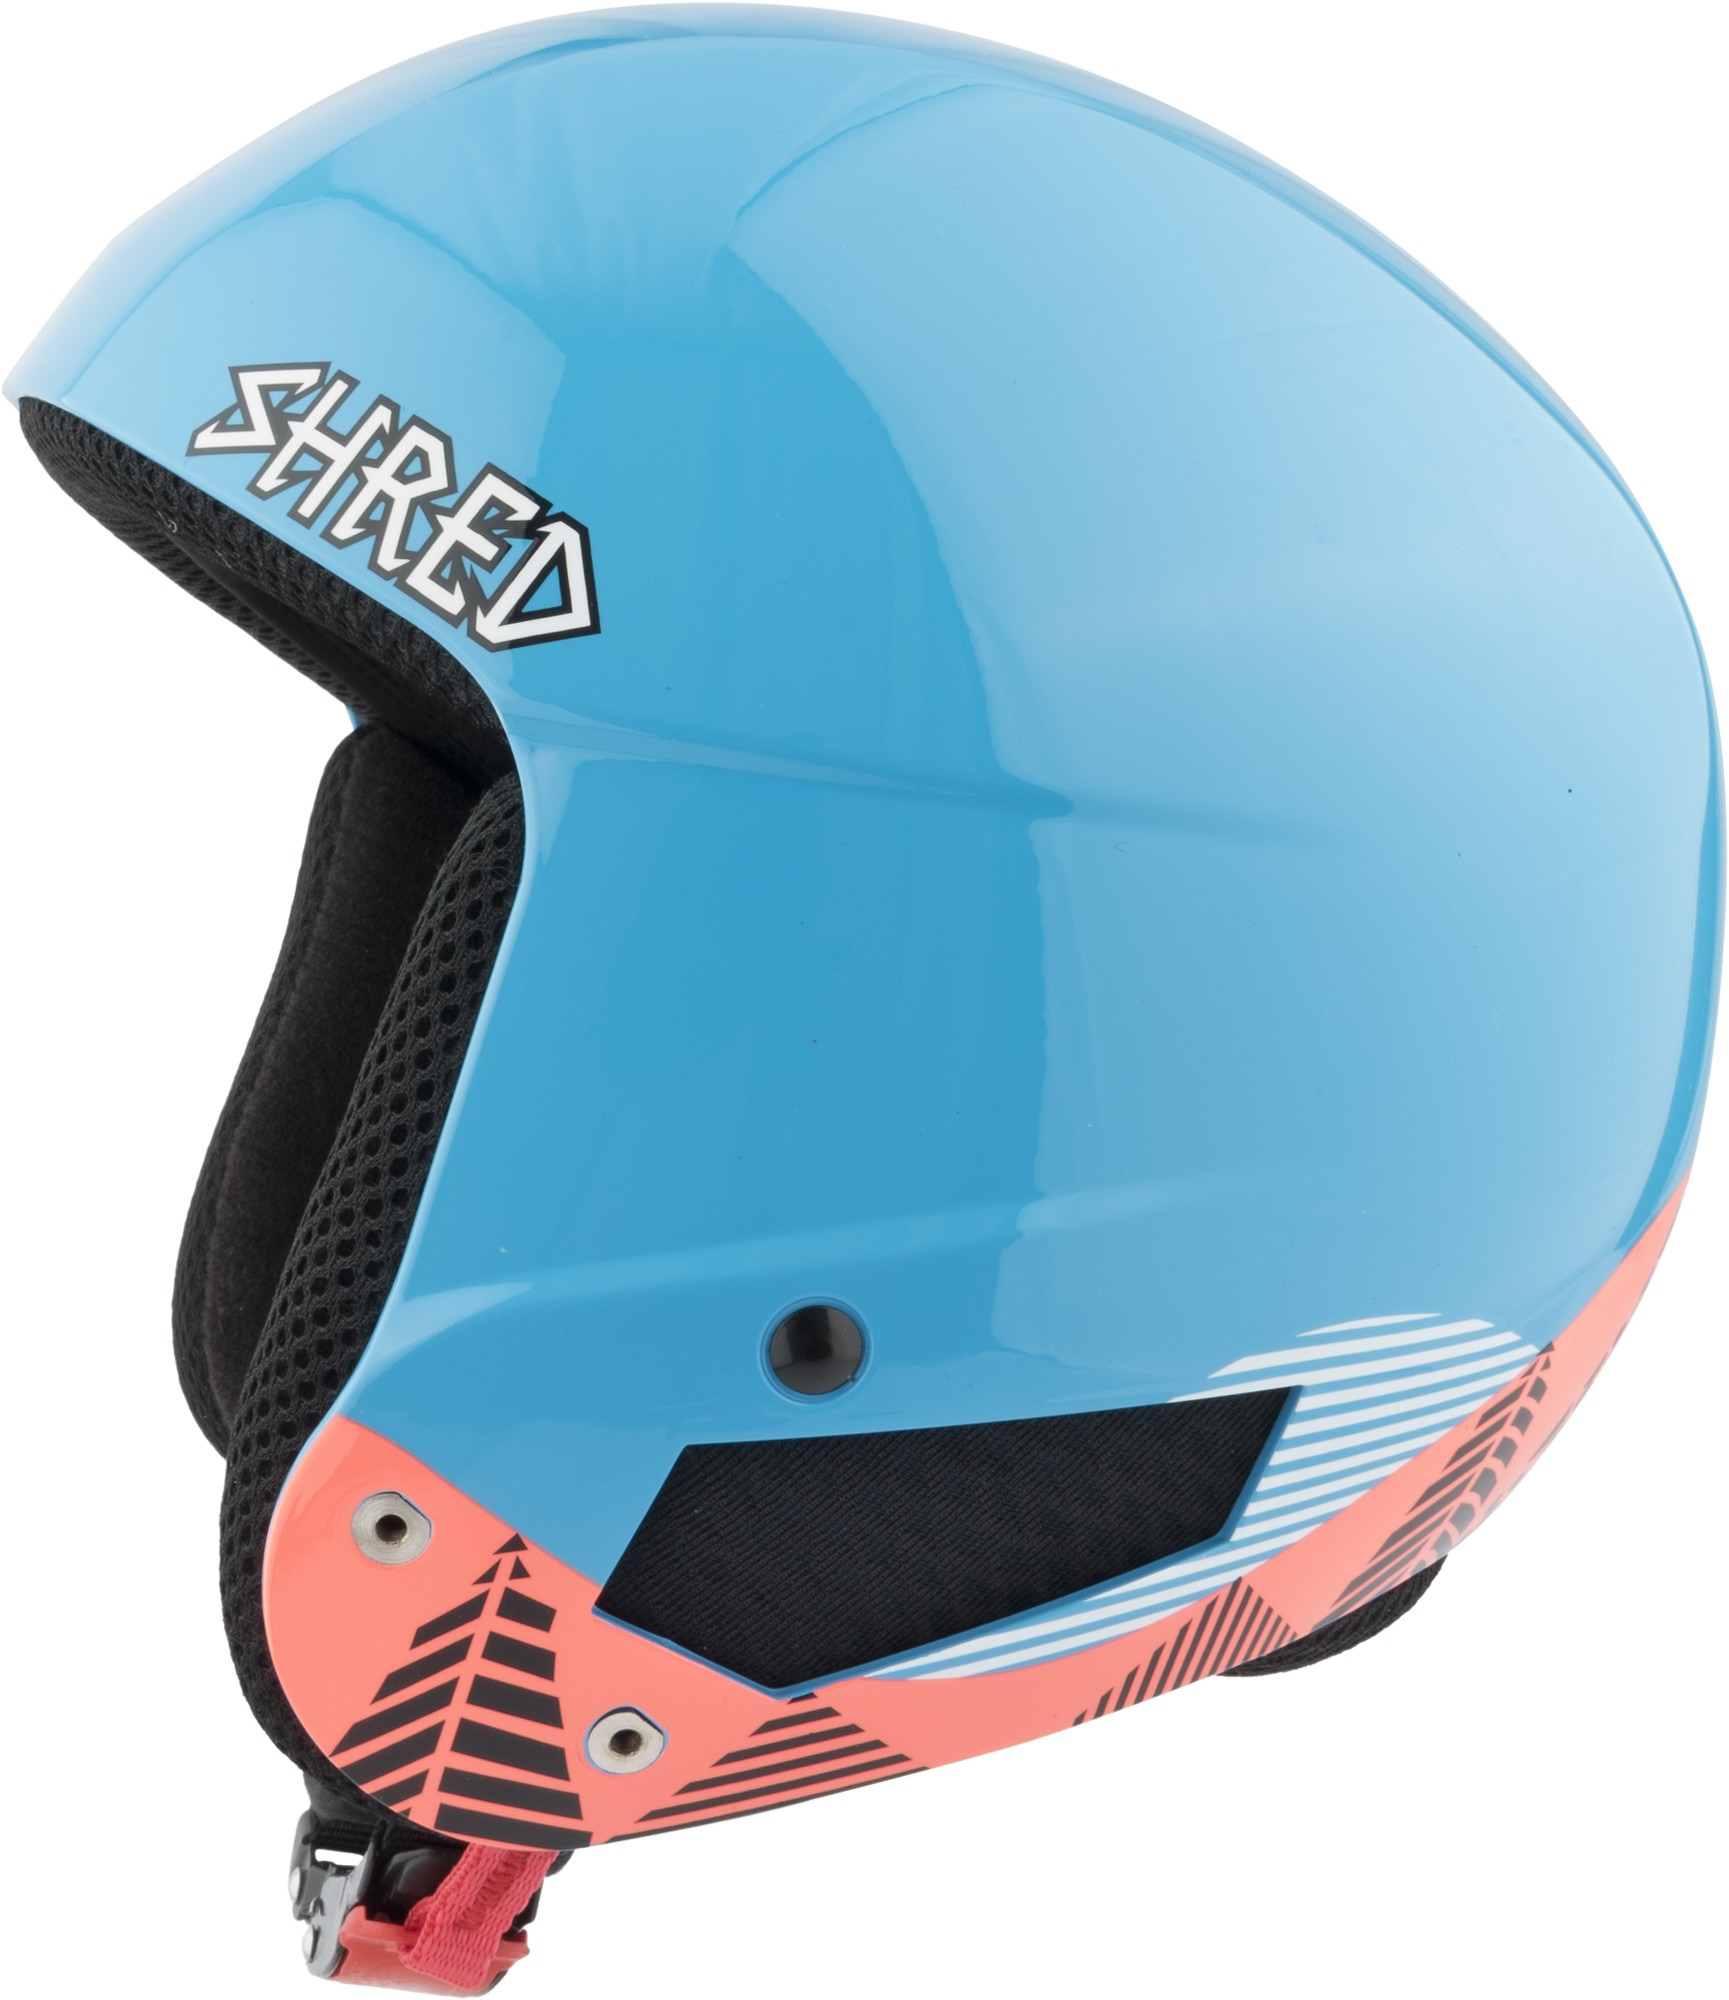 Shred Mega Brain Bucket RH FIS TIMBER ski helmet, 2017